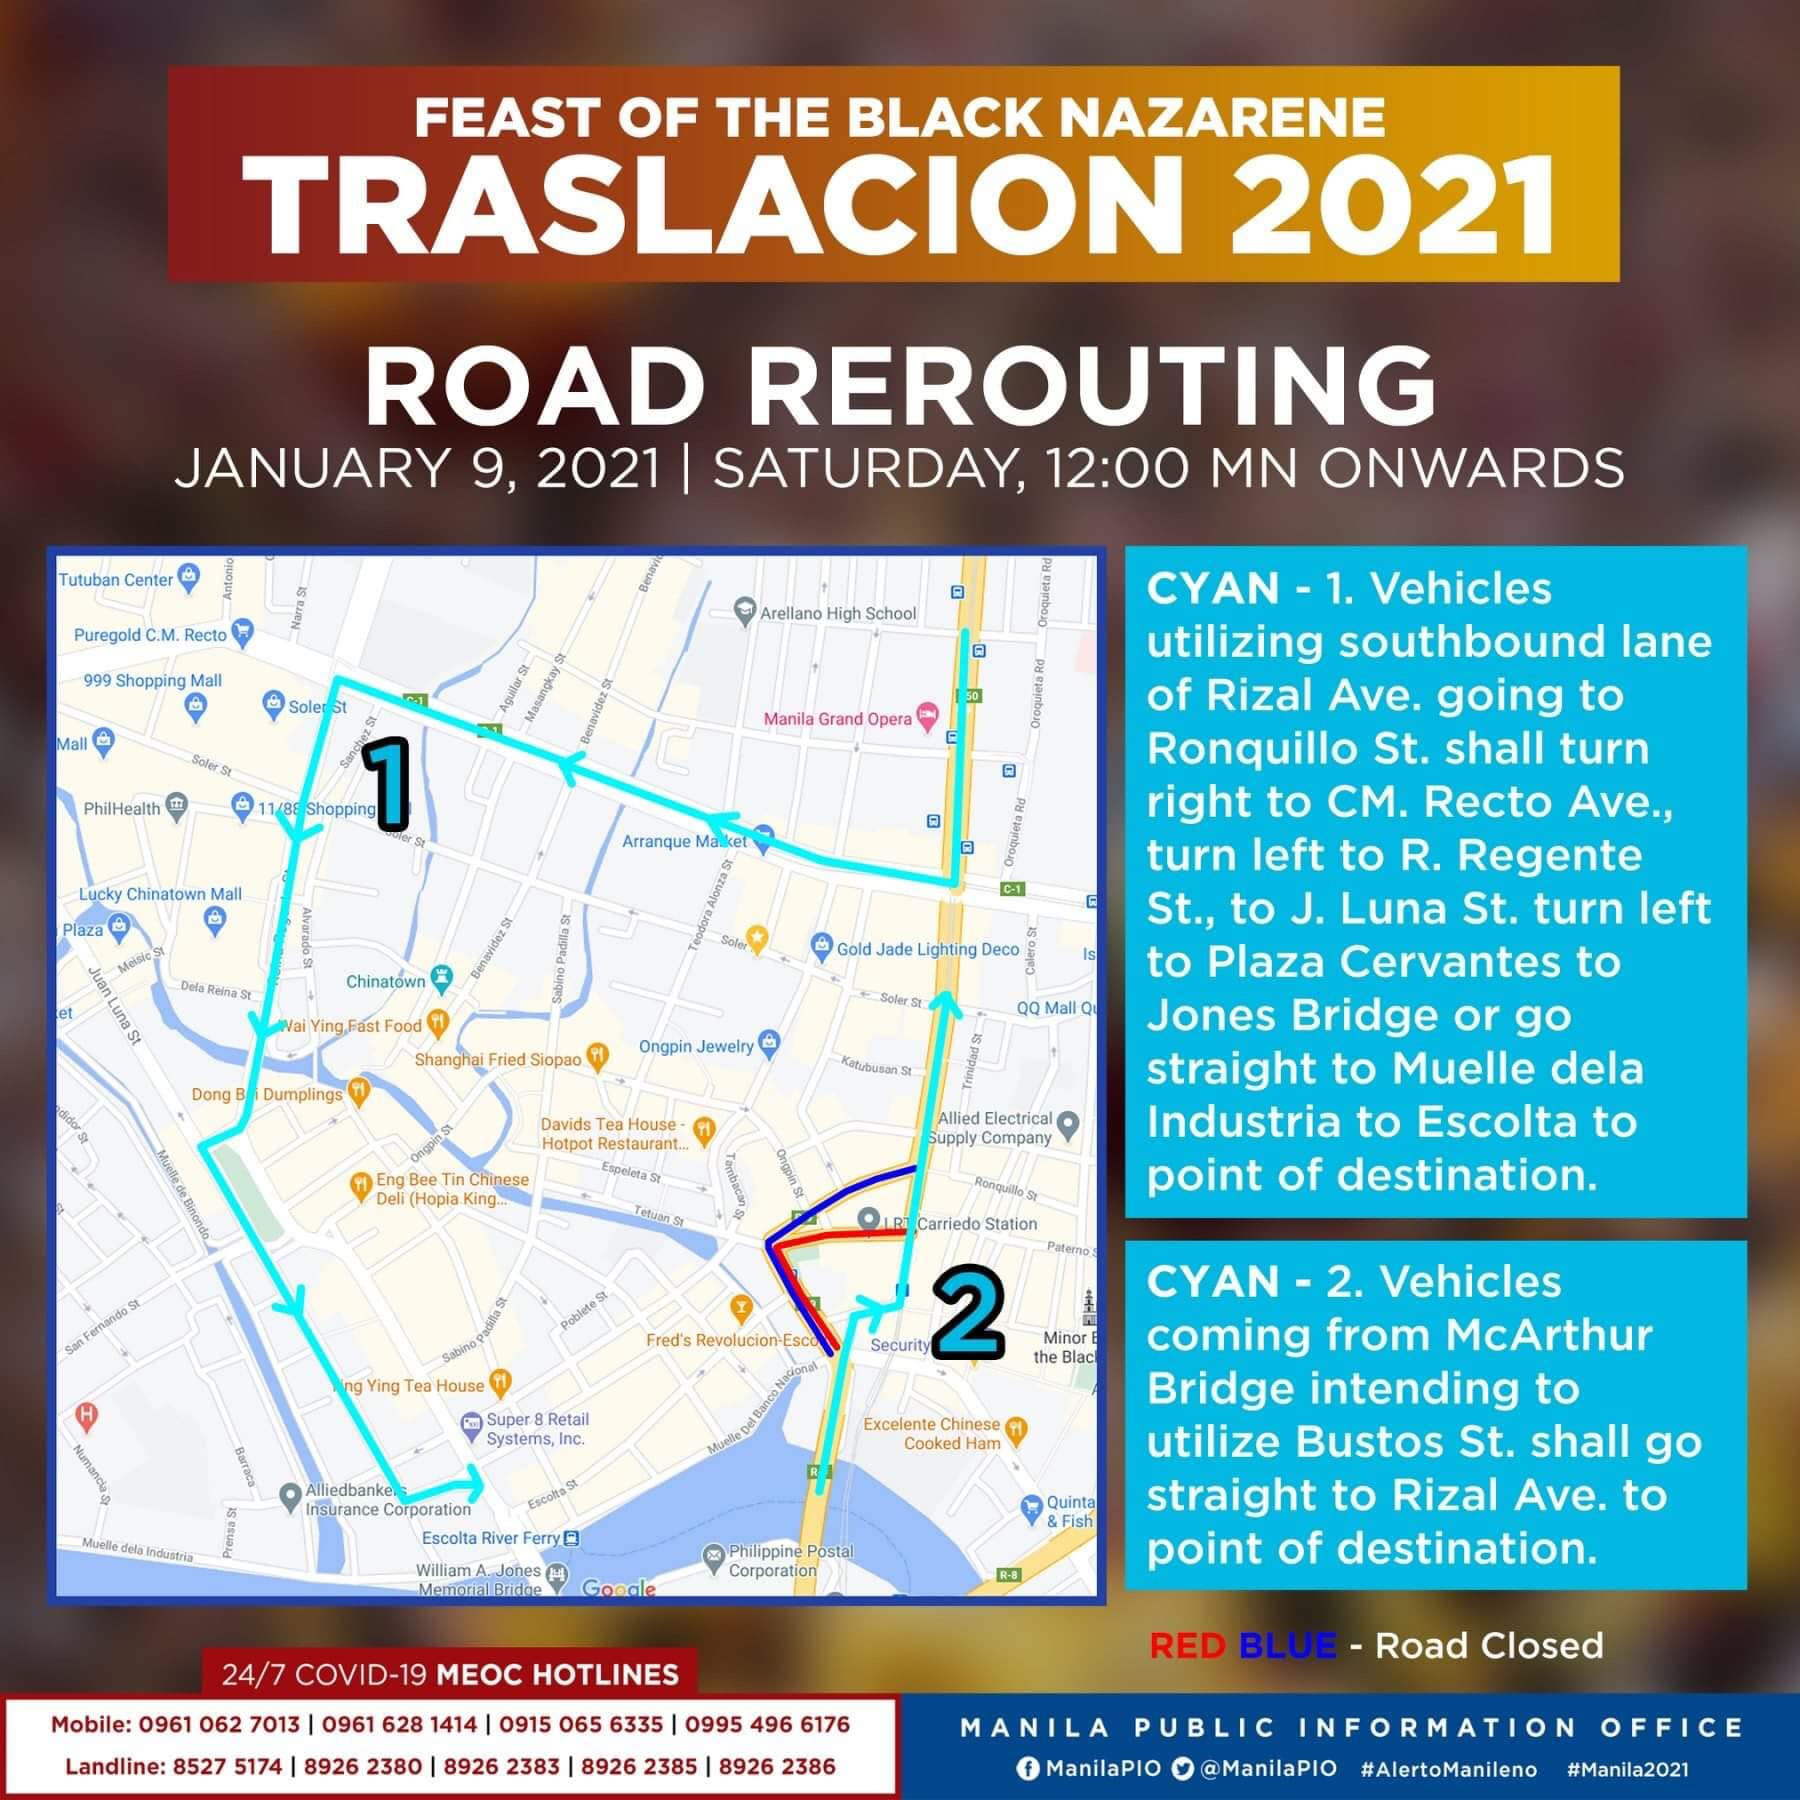 Traslacion Road rerouting on January 9, 2021 (12am onwards) - Recto Ave, Regente St to J Luna St., Plaza Cervantes; MacArthur Bridge to Bustos, to Rizal Ave